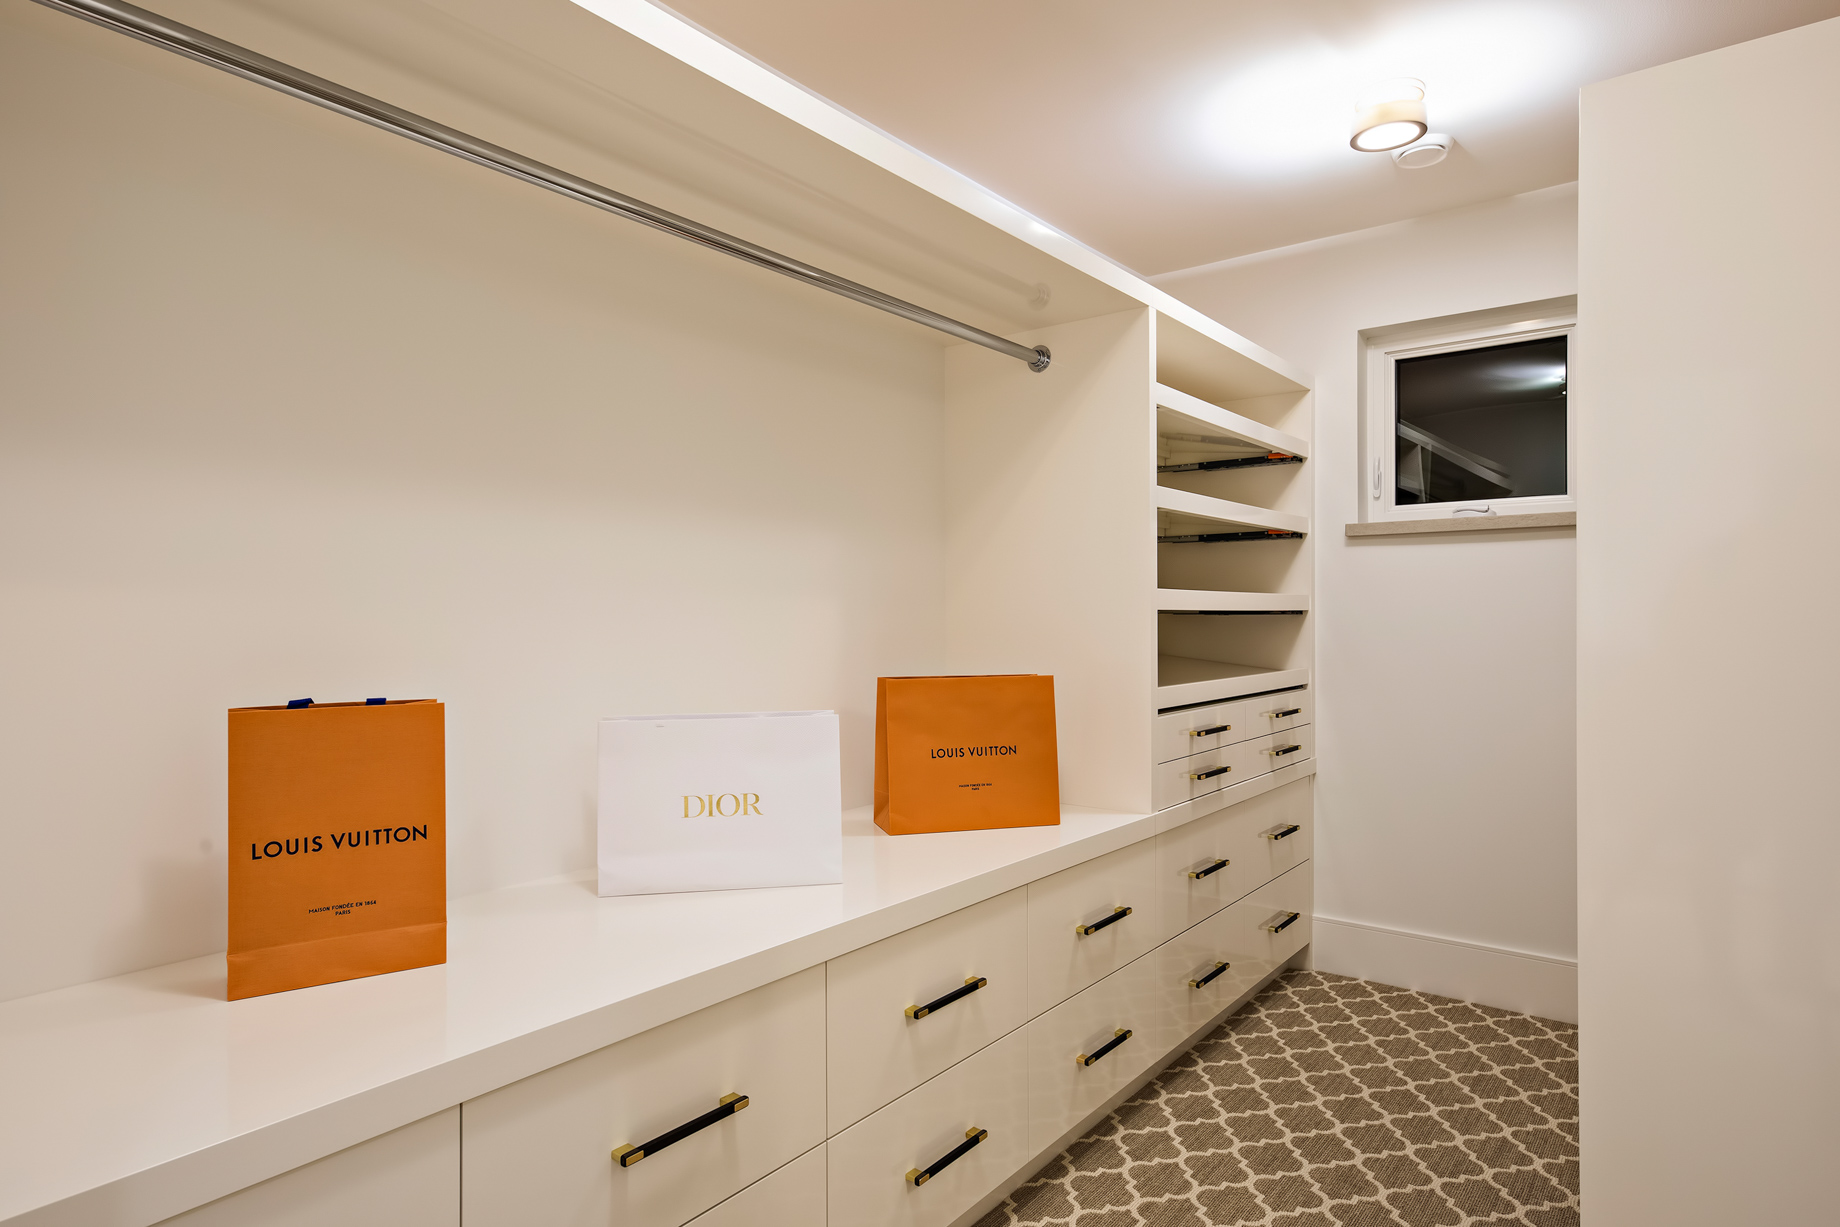 2111 Union Court, West Vancouver, BC, Canada - Closet - Luxury Real Estate - West Coast Modern Home